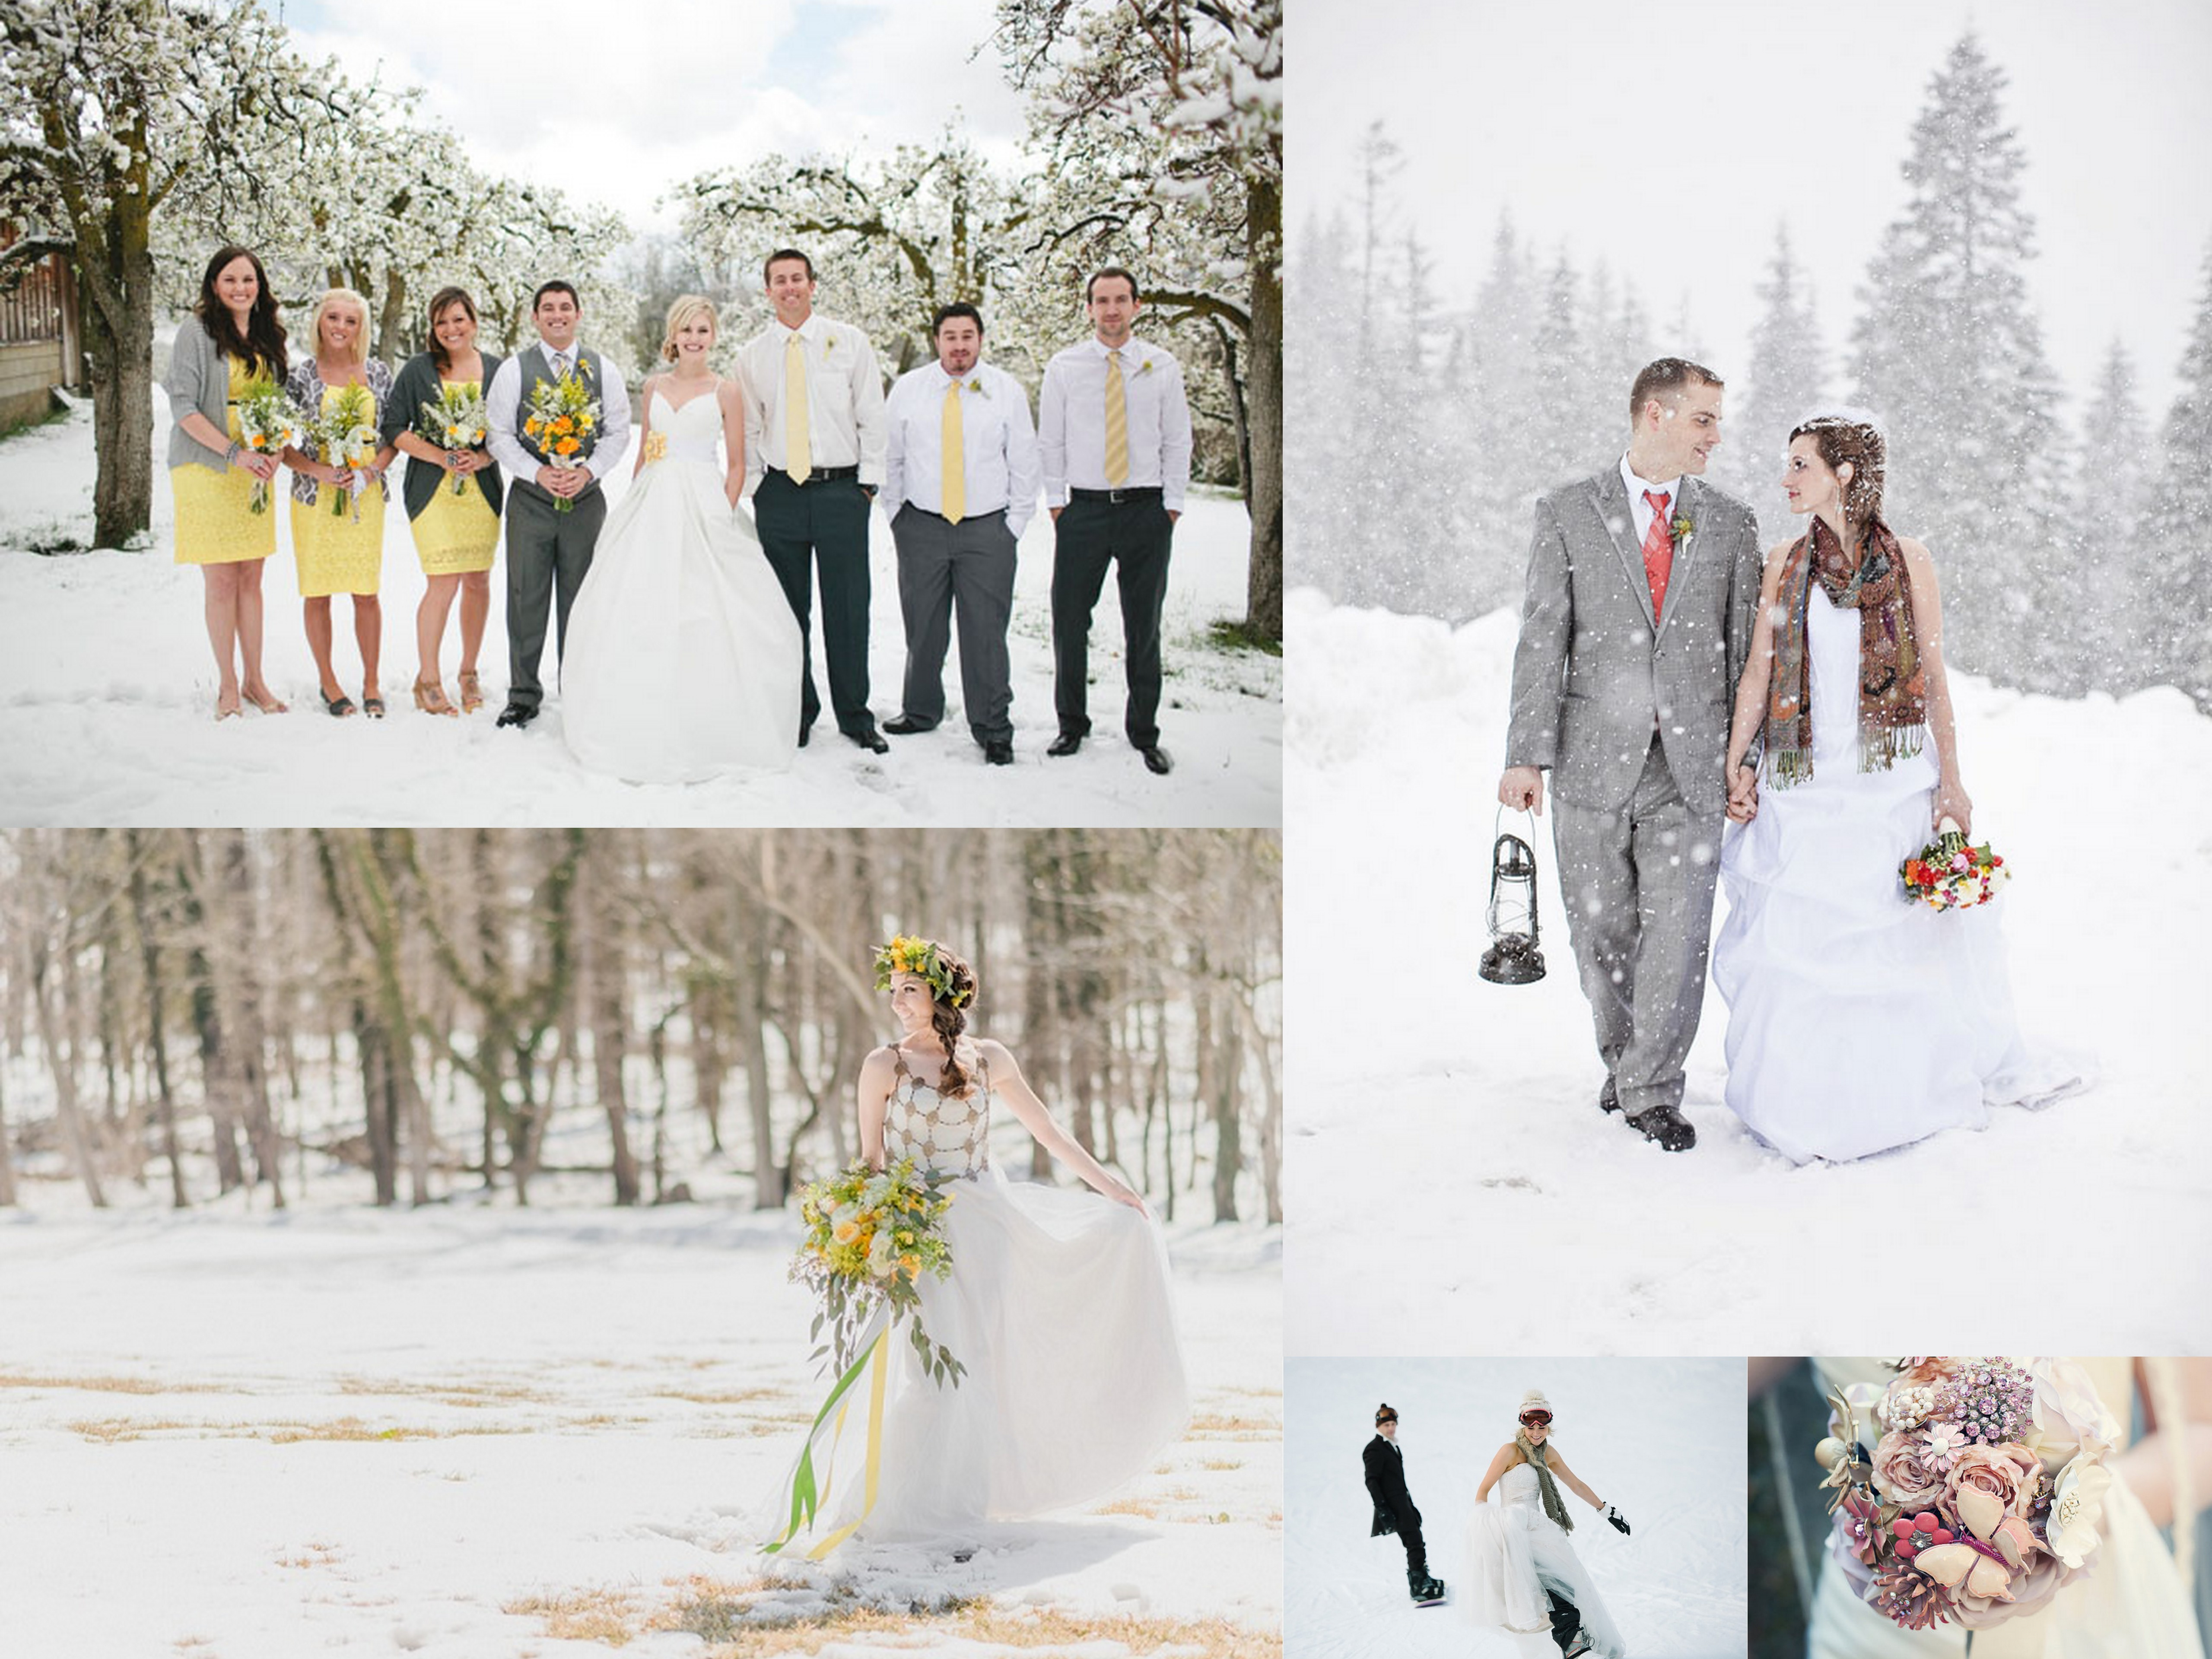 Citrus and snow weddings - A2zWeddingCards